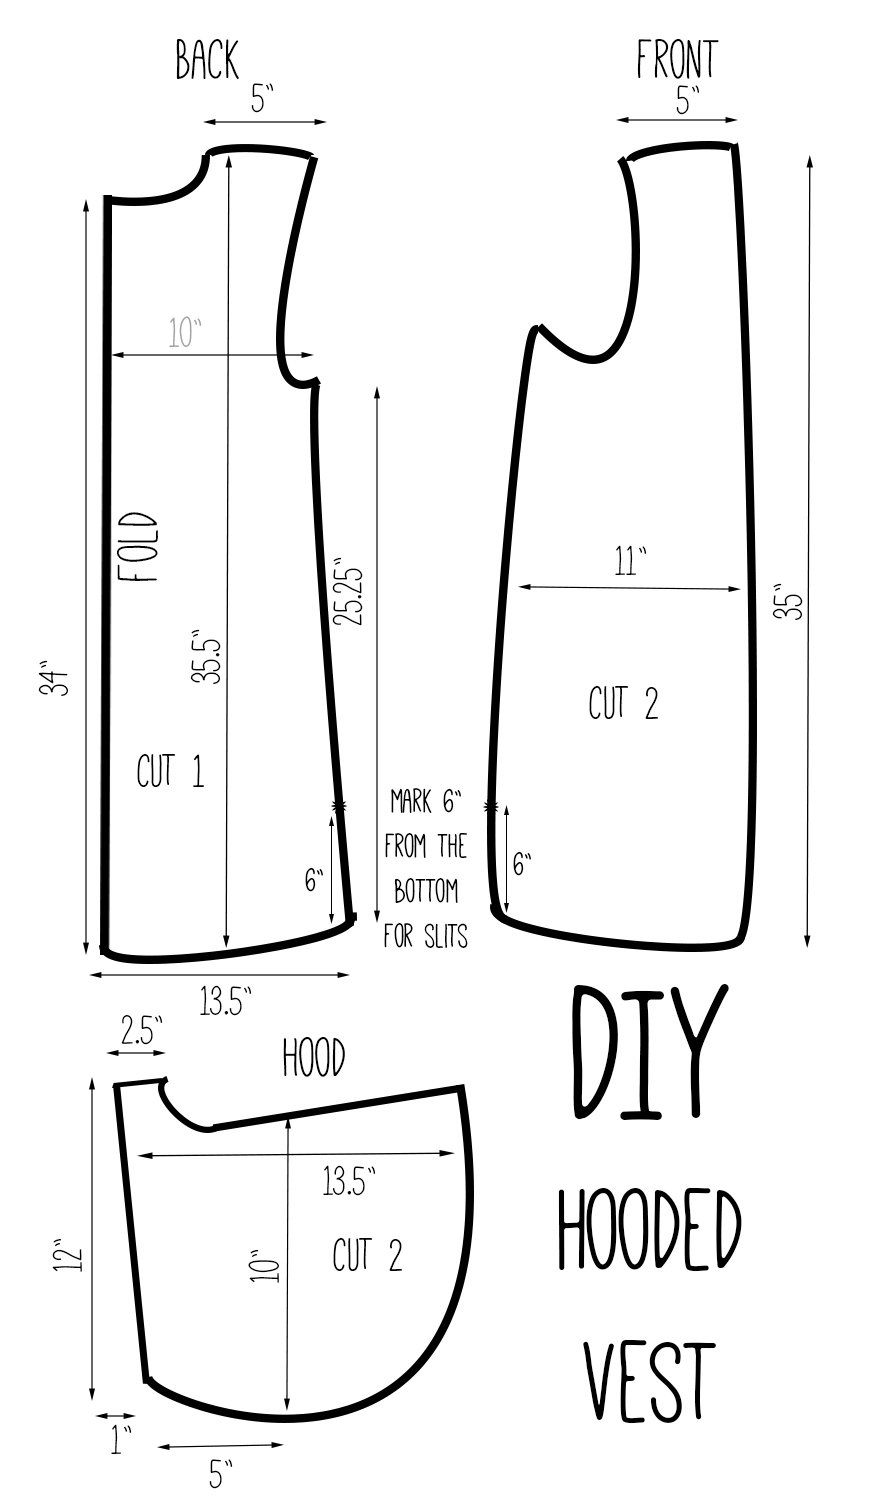 Vest pattern pieces diy hooded vest versatile one vest 3 looks vest pattern pieces diy hooded vest versatile one vest 3 looks pooptronica